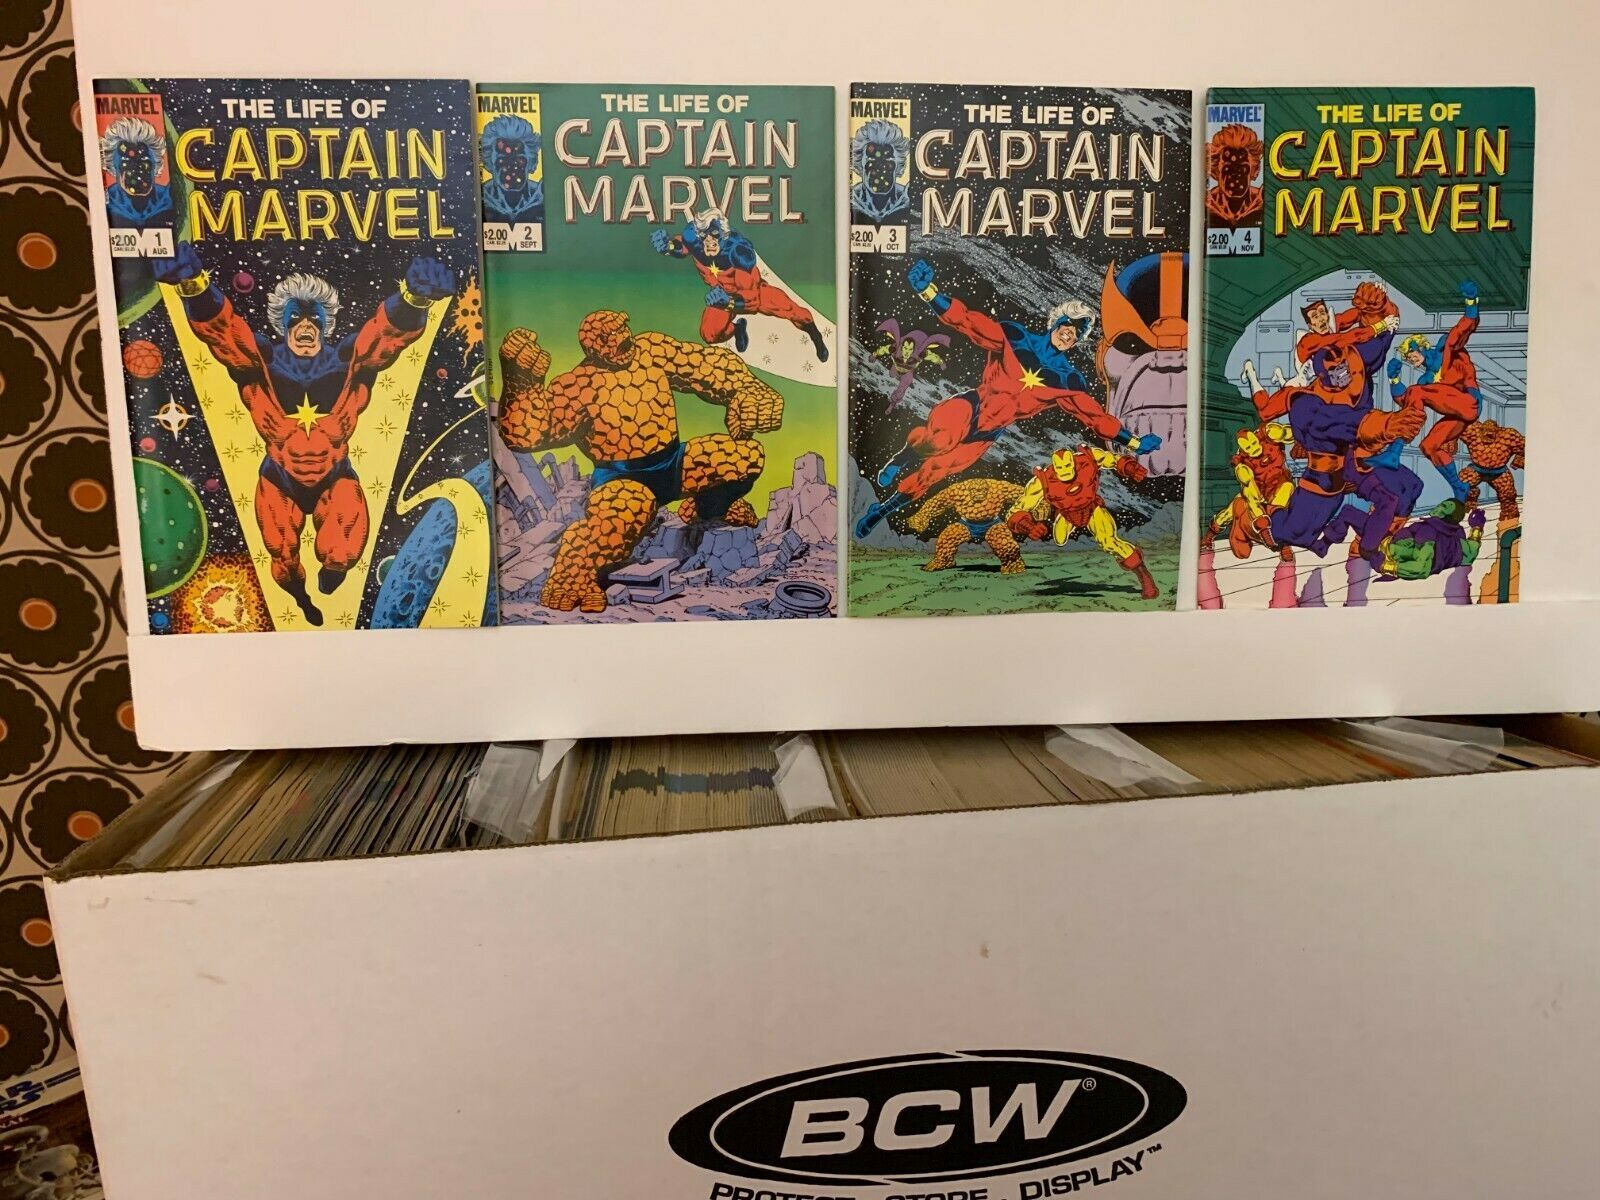 THE LIFE OF CAPTAIN MARVEL (MARVEL COMICS) 1985, 1990 VF COMPLETE 5 BOOK SET